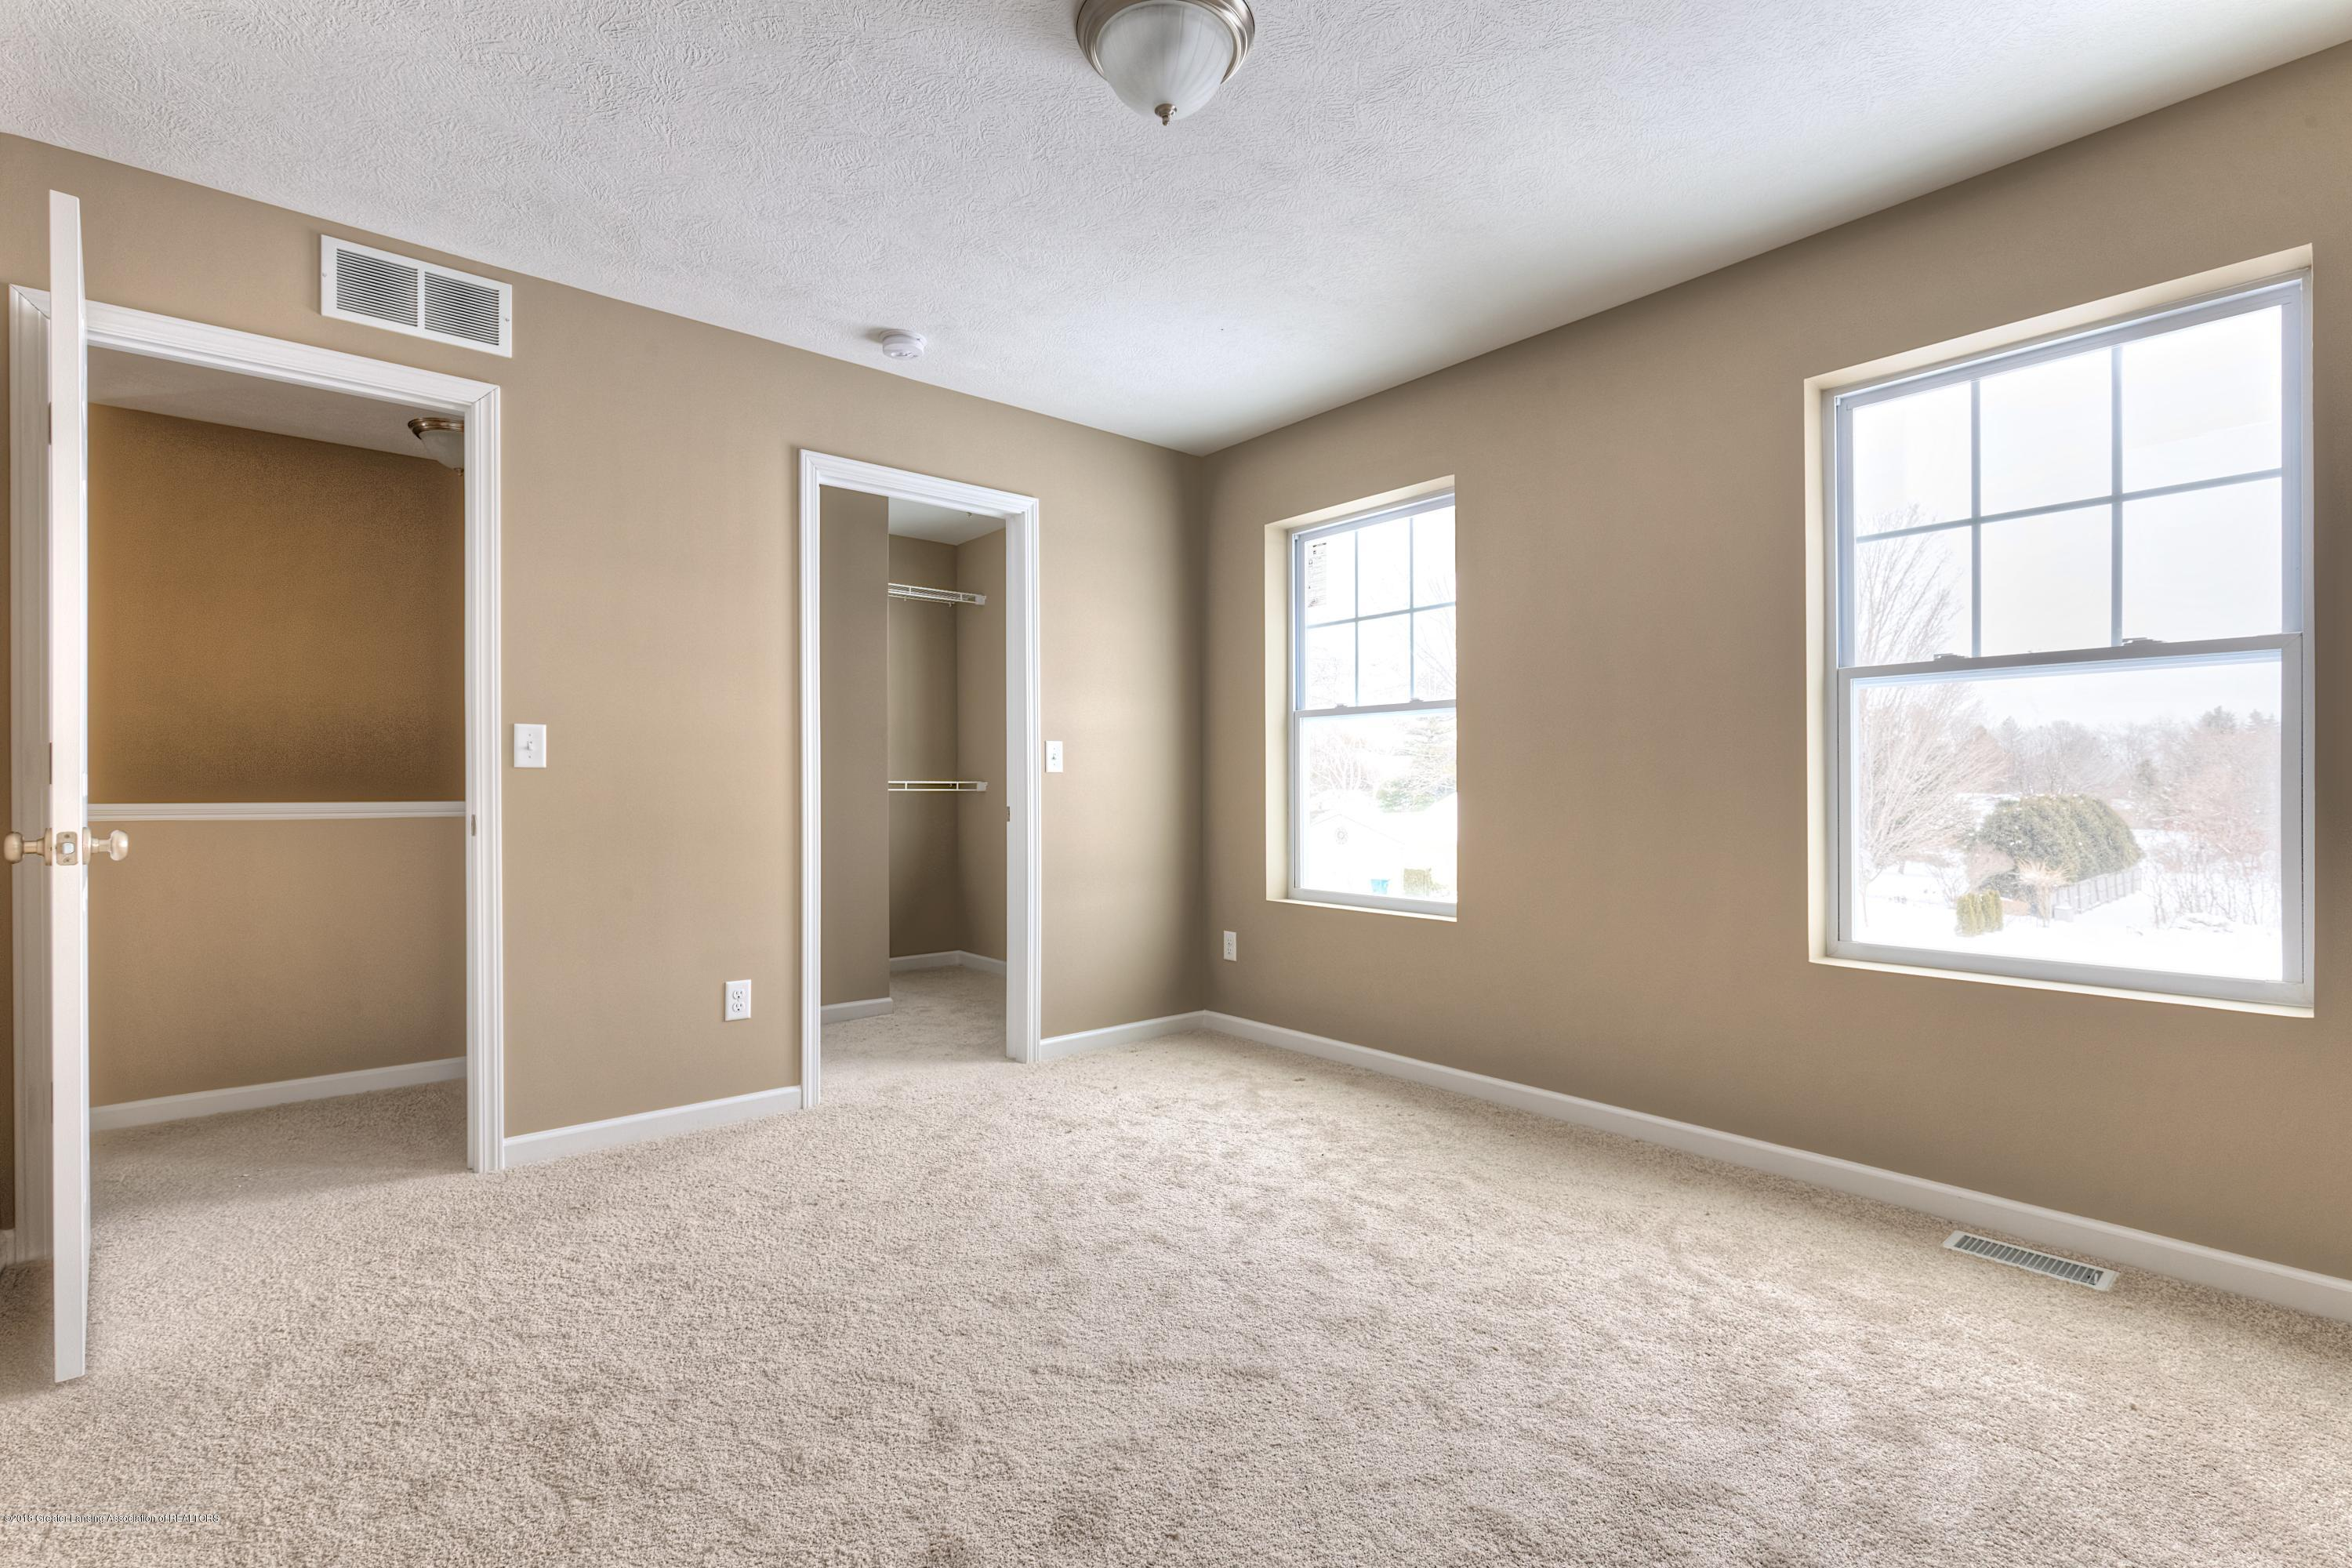 1883 Nightingale Dr - Bed PVF021-E1700 13 - 11